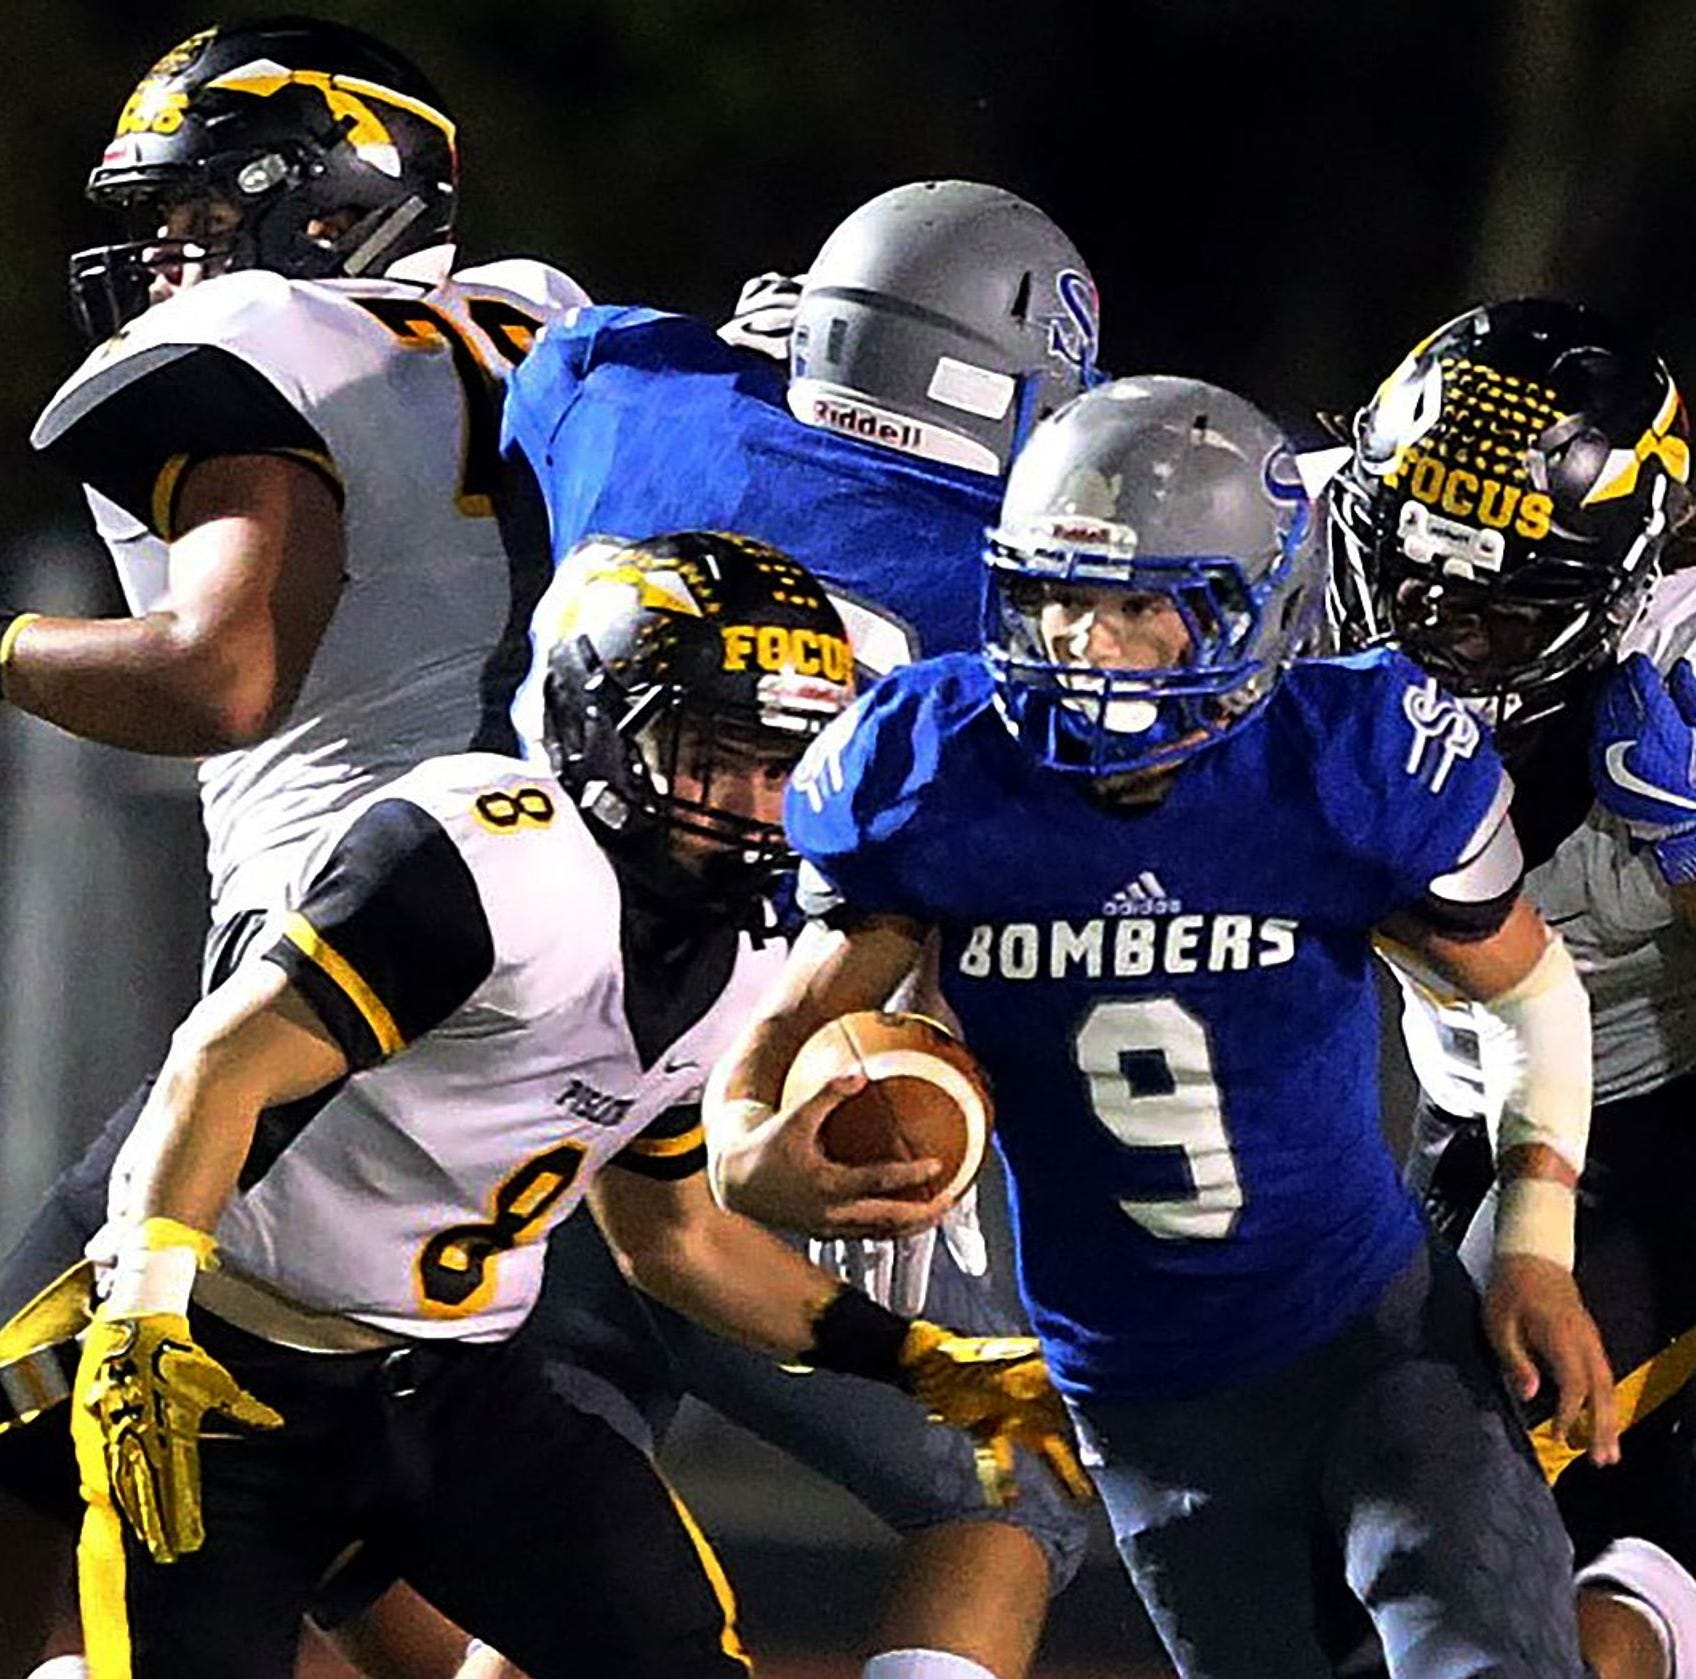 NJ football: Coaches Higgins and Beagan weigh in on Piscataway-Sayreville showdown